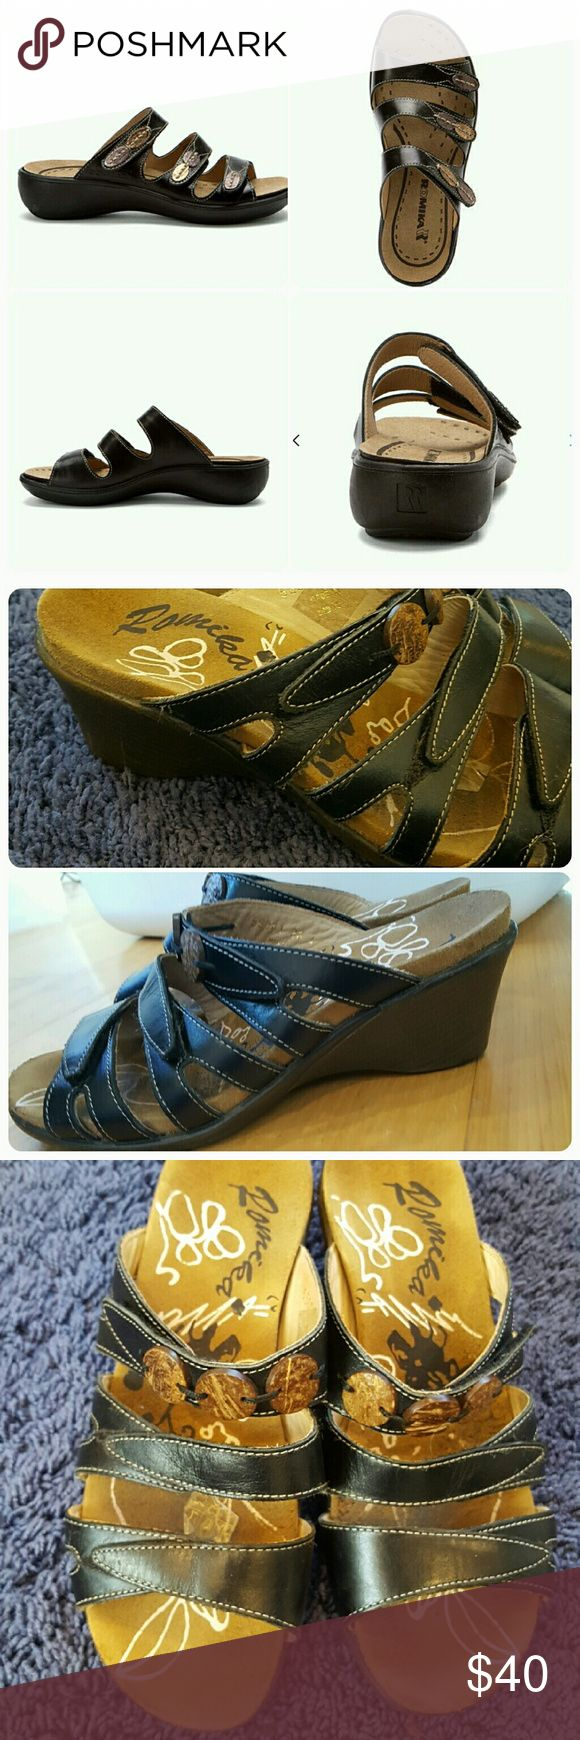 Romika slide sandals. Romika slide sandals. Black leather with wood accents. Straps are completely adjustable.  Soze 36 Euro, size 6.5 US.  Currently for sale online at zappos and shoes.com for $119.95. Romika Shoes